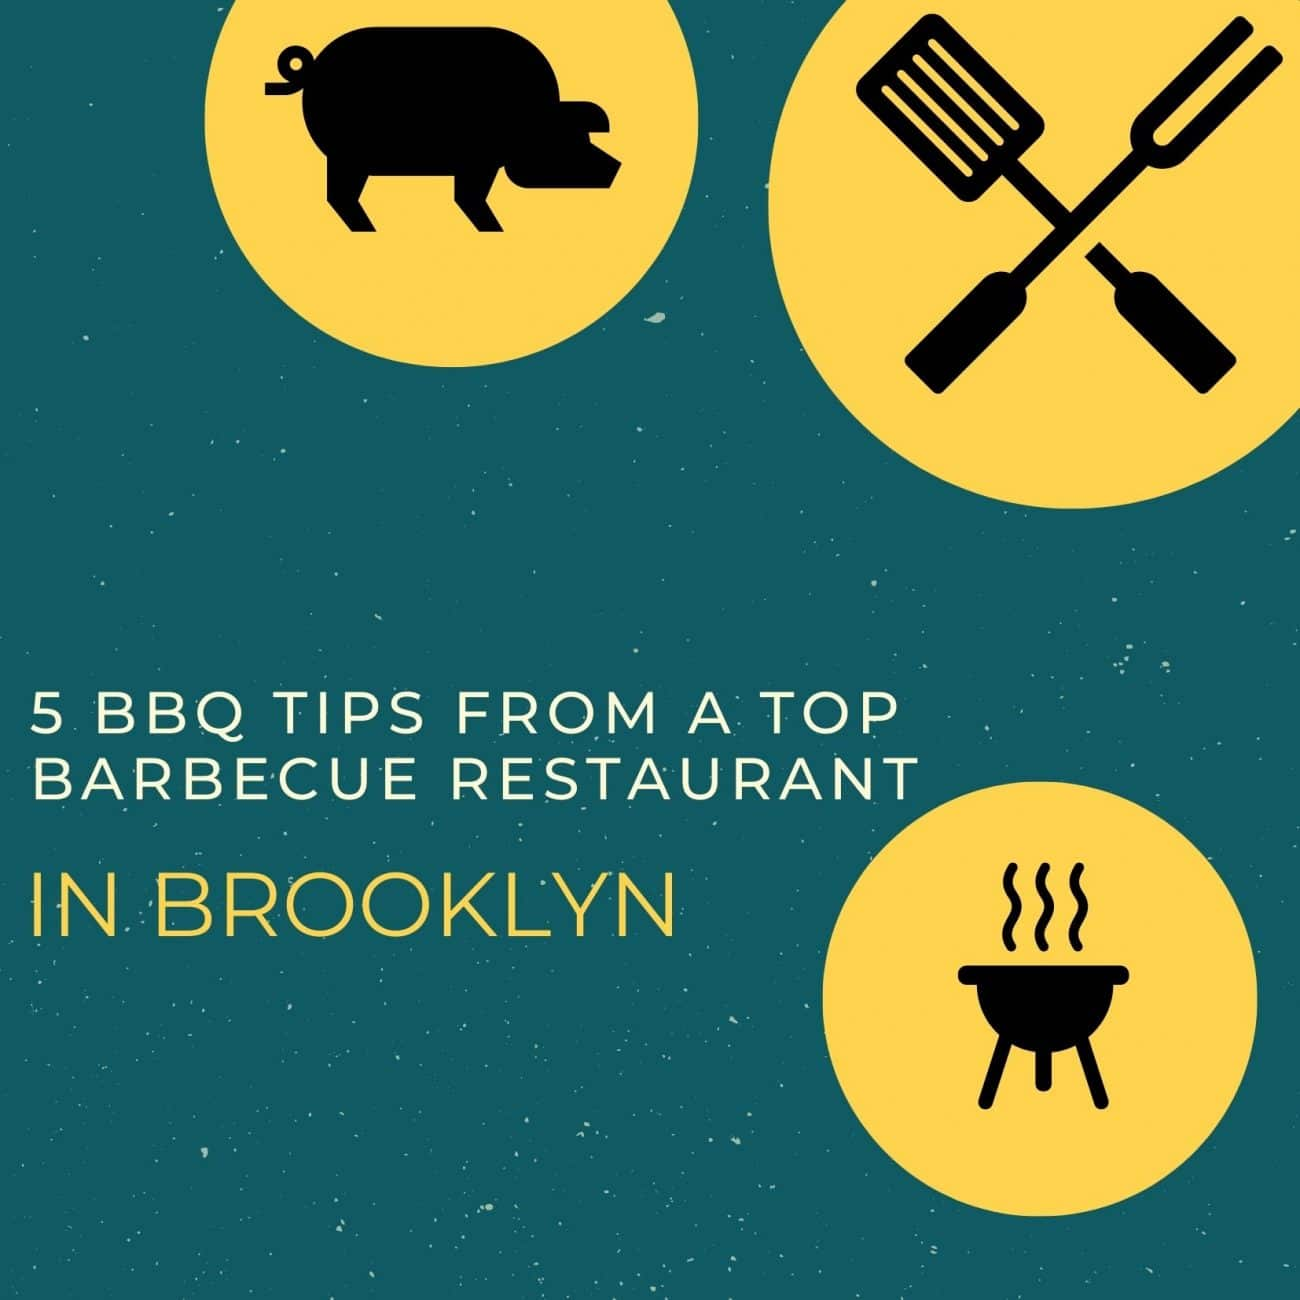 5 Grilling Tips from a Top BBQ Restaurant in Brooklyn